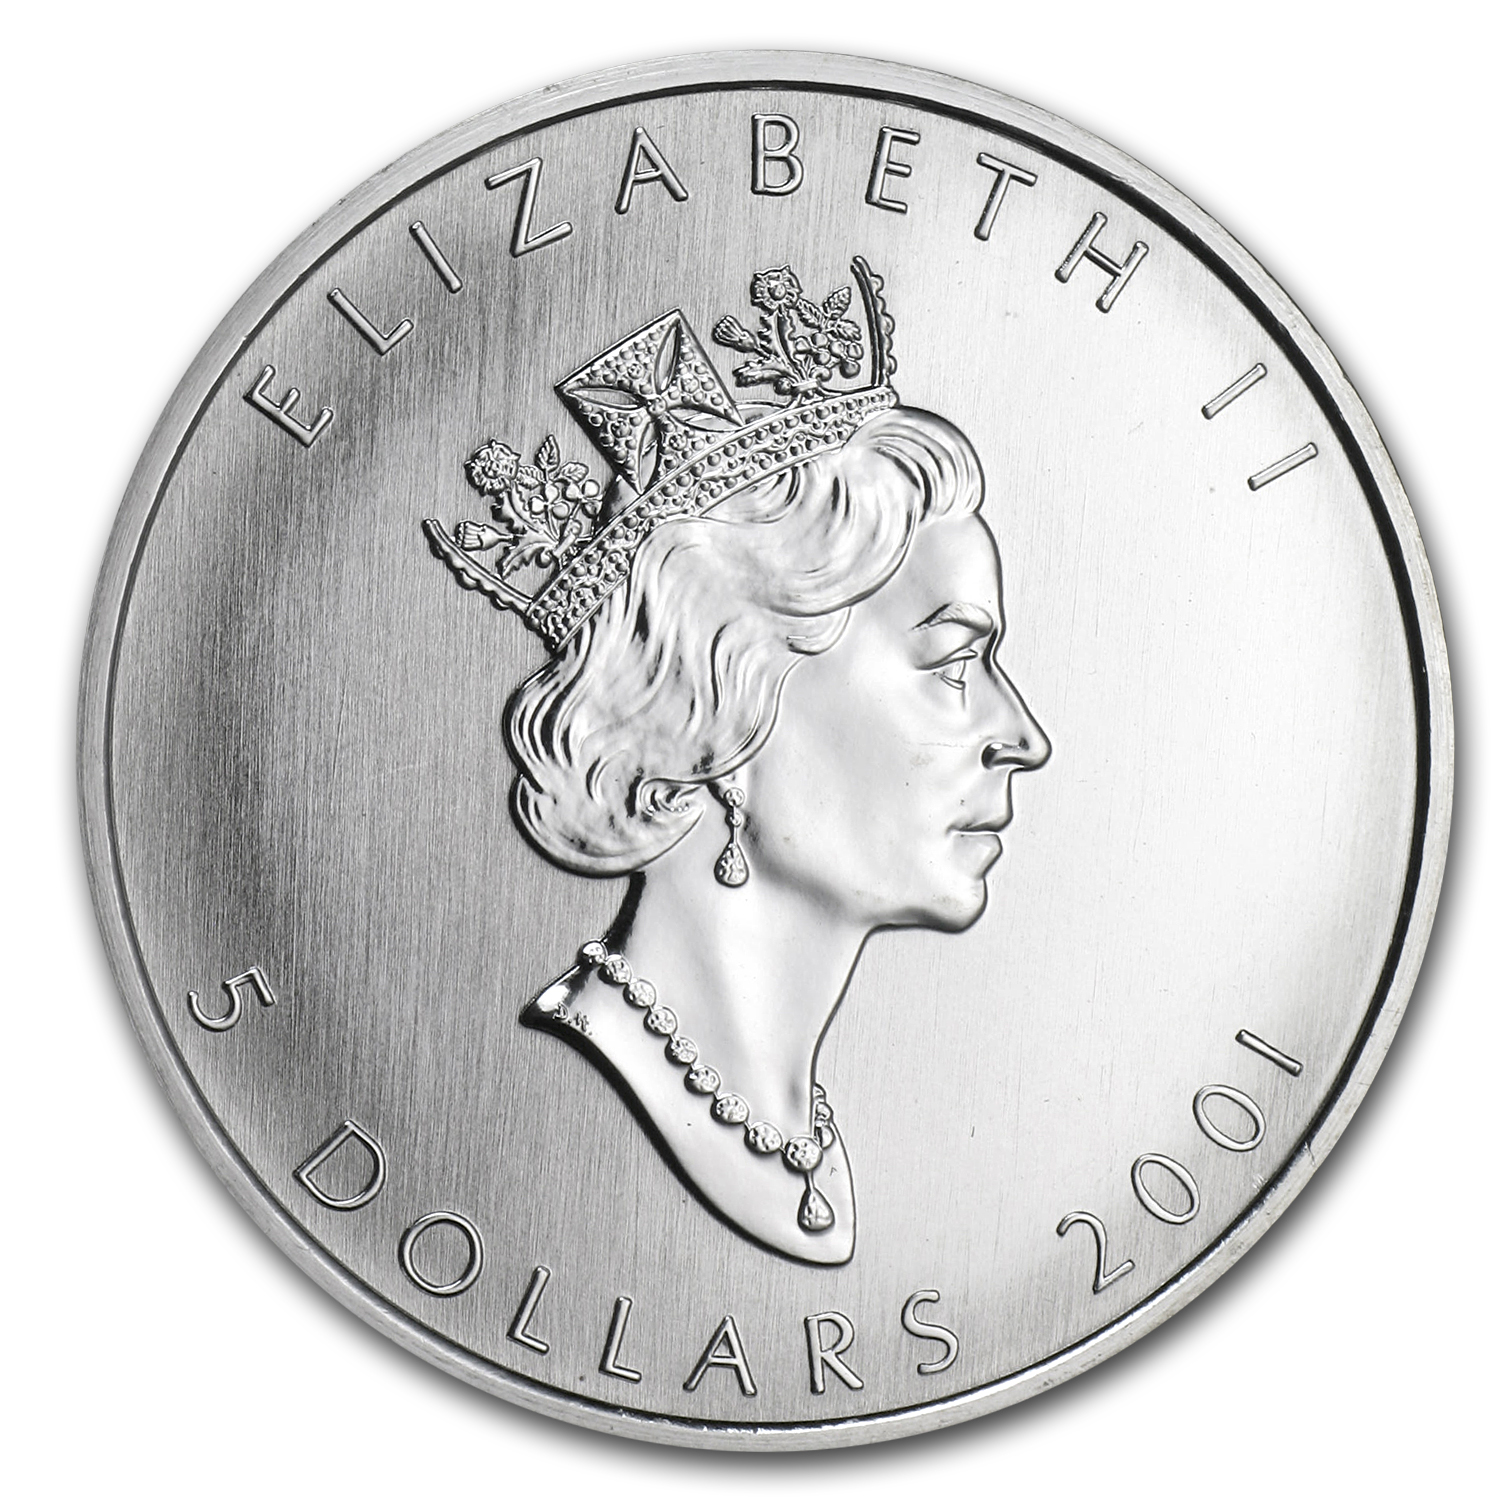 2001 1 oz Silver Canadian Maple Leaf (Autumn) (Abrasions)